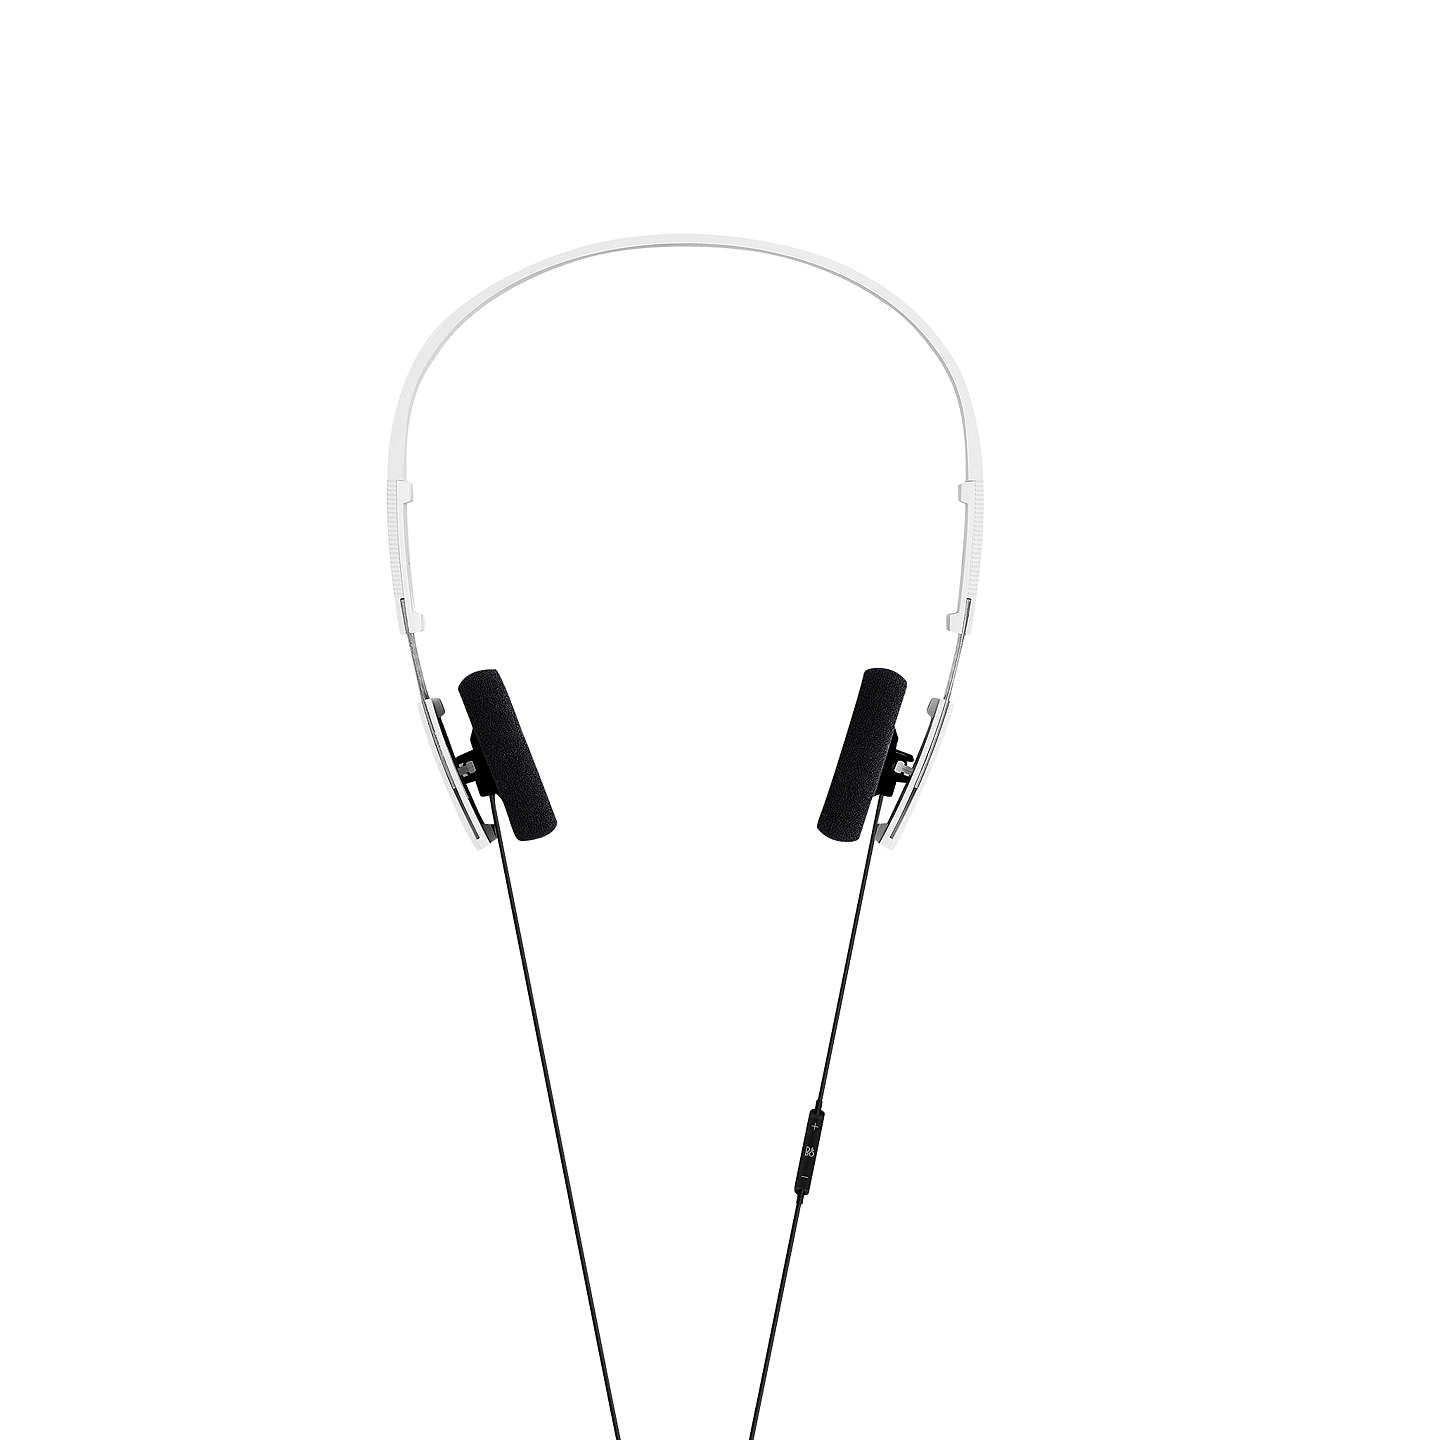 BuyB&O PLAY by Bang & Olufsen Beoplay Form 2i On-Ear Headphones with Mic/Remote, White Online at johnlewis.com